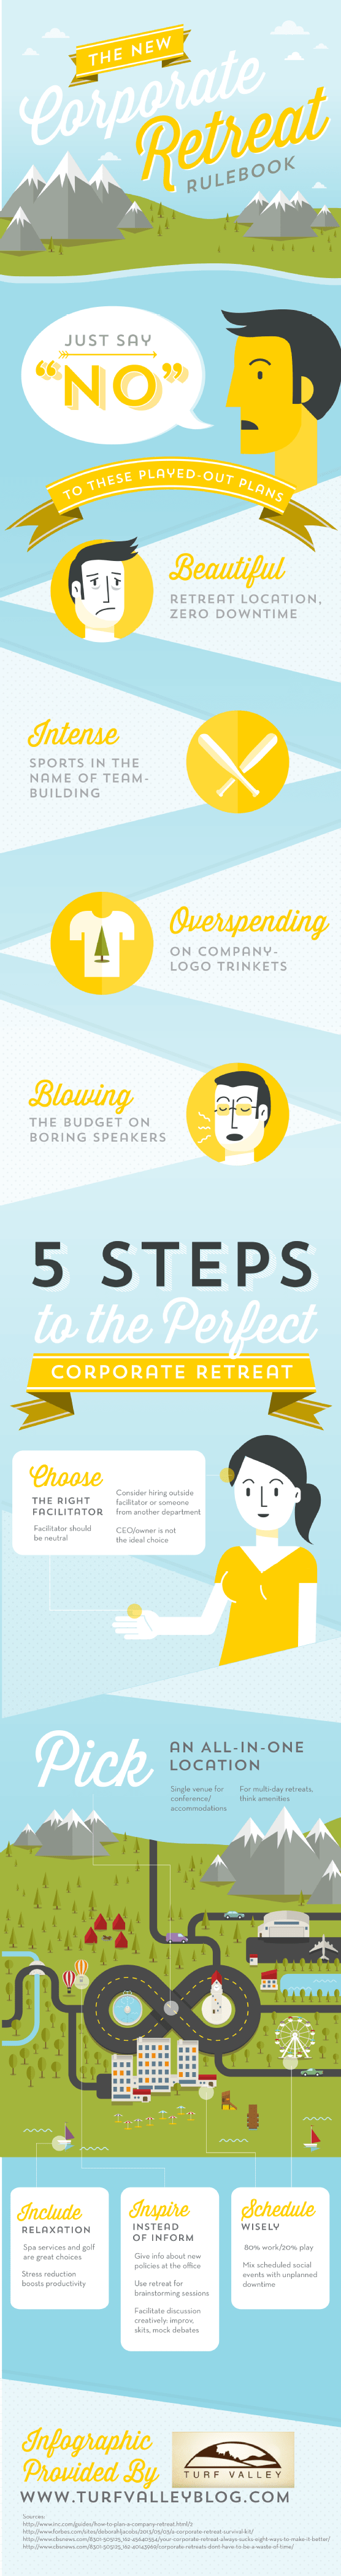 The New Corporate Retreat Rulebook